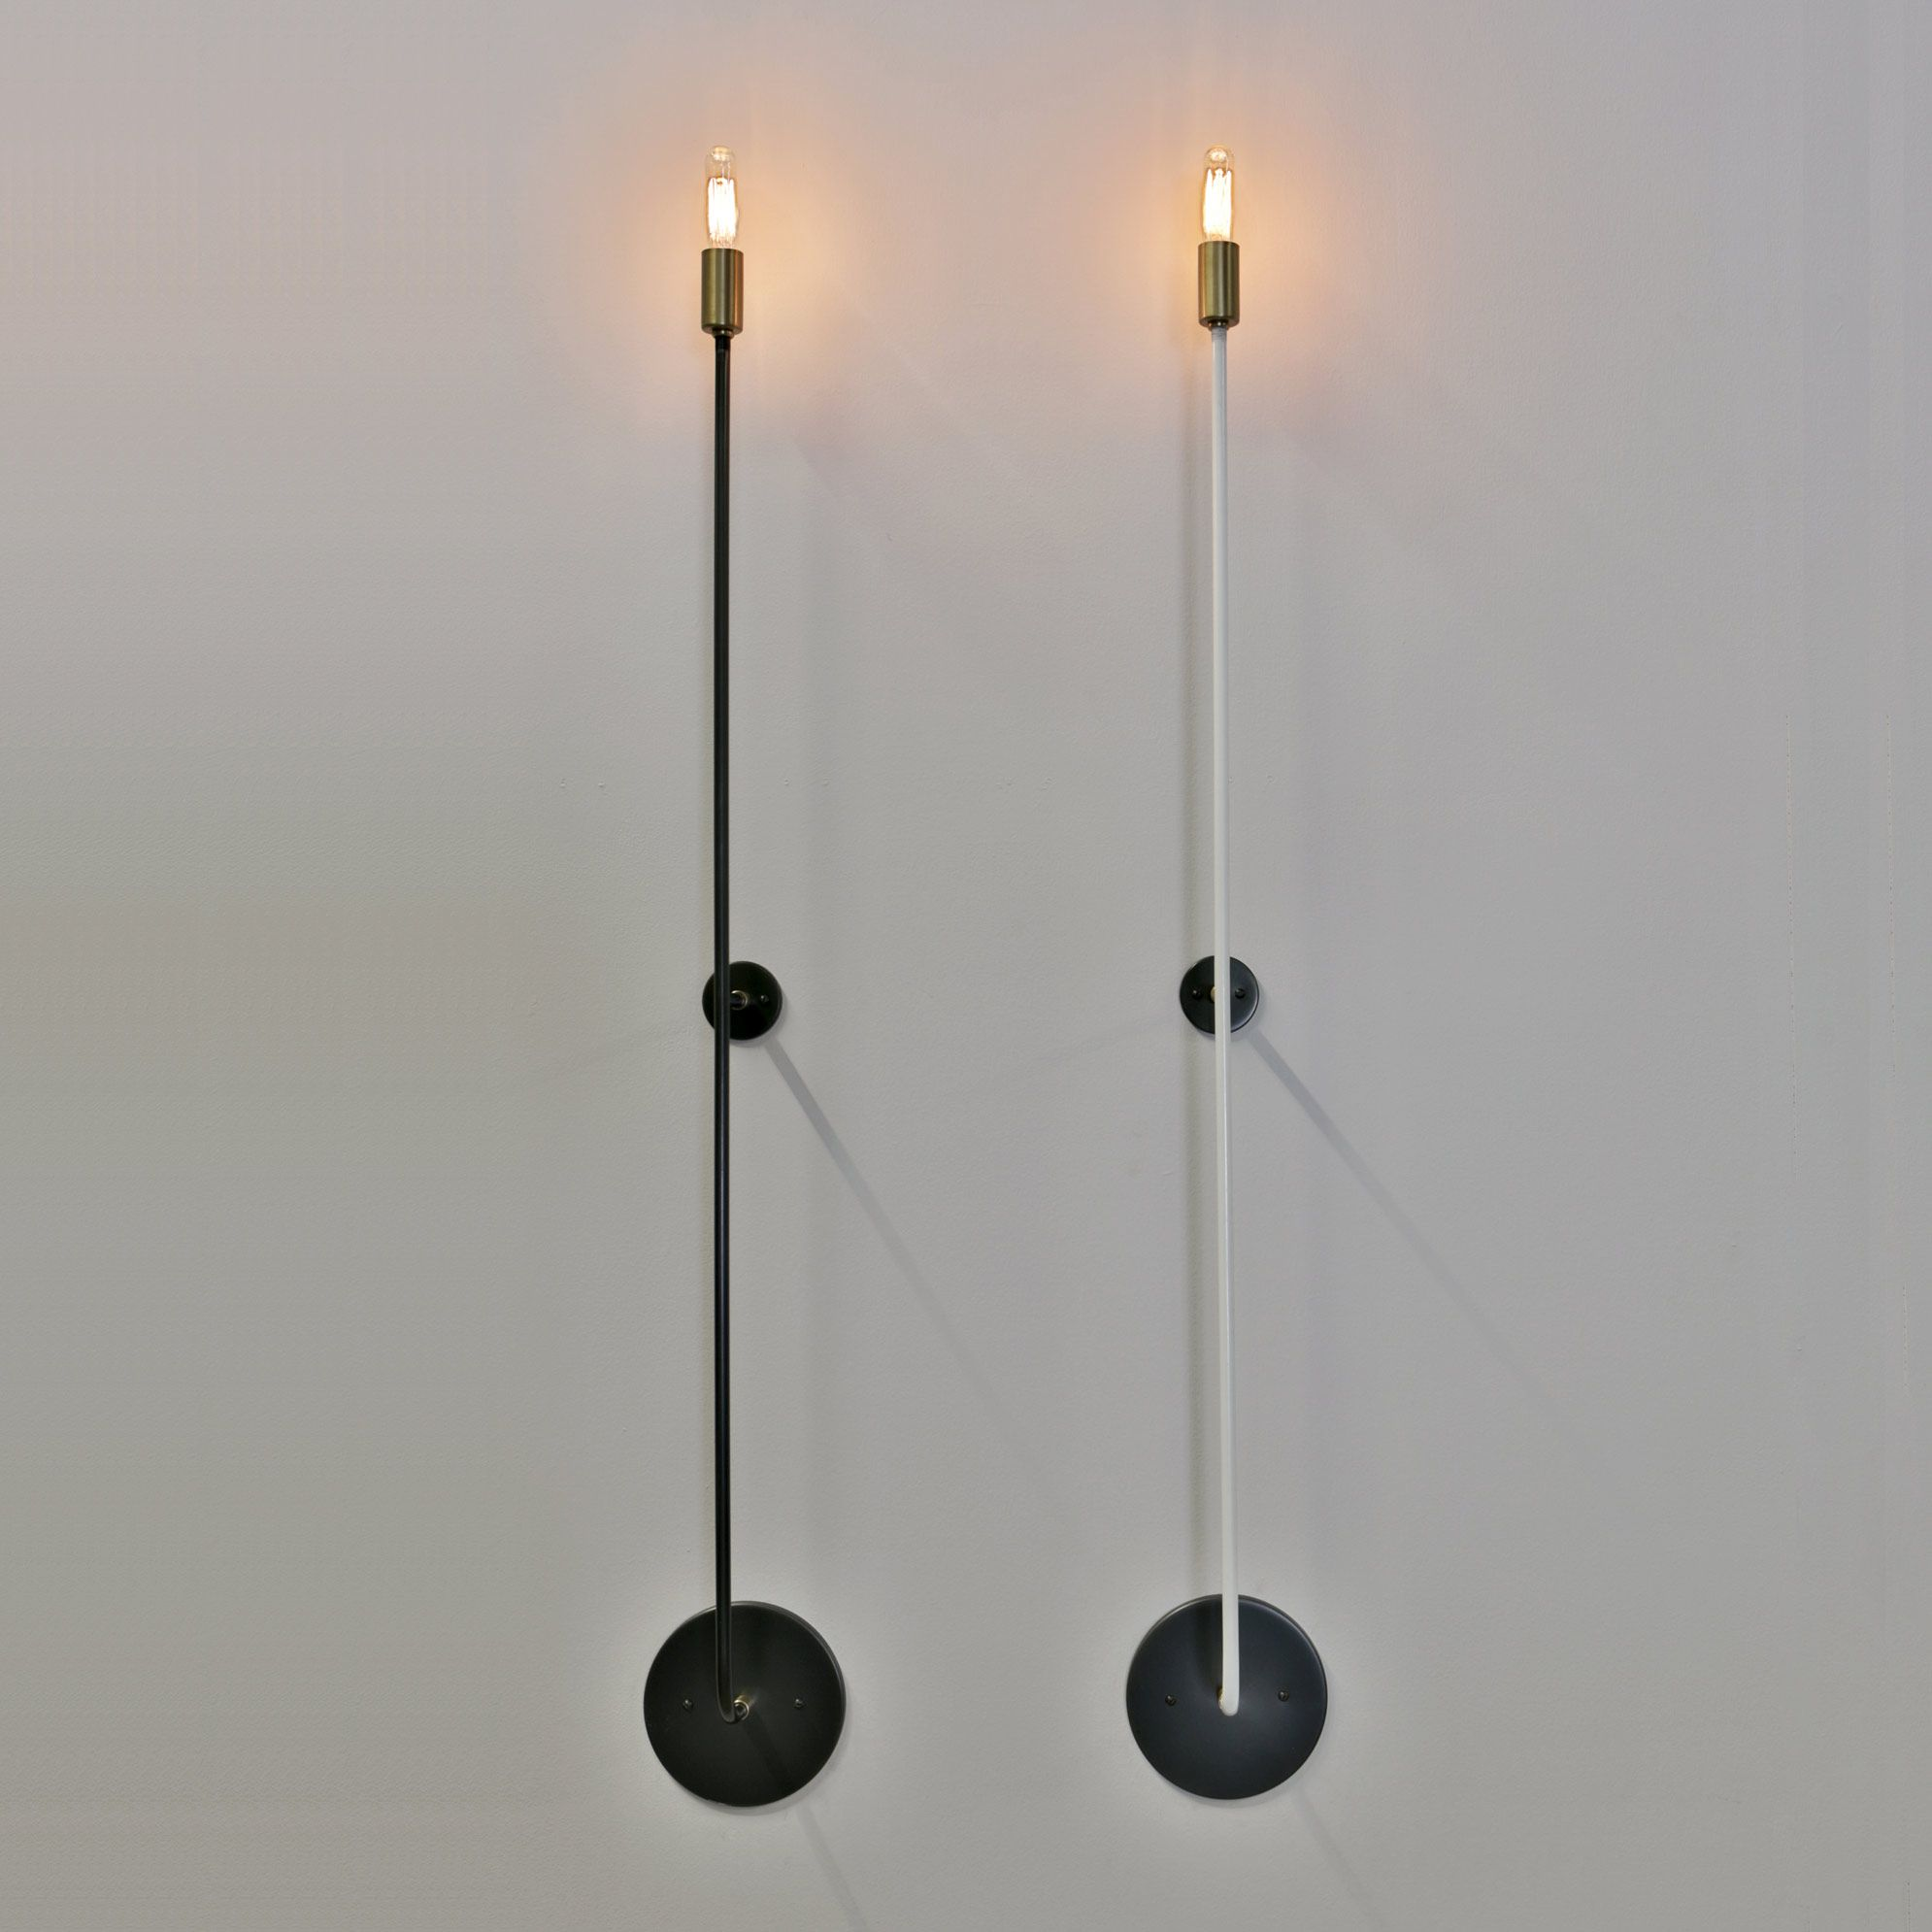 Stick Wall Light By John Beck Steel Jbsl Scb 38 Hw Steel Lighting Wall Lights Plug In Wall Lights